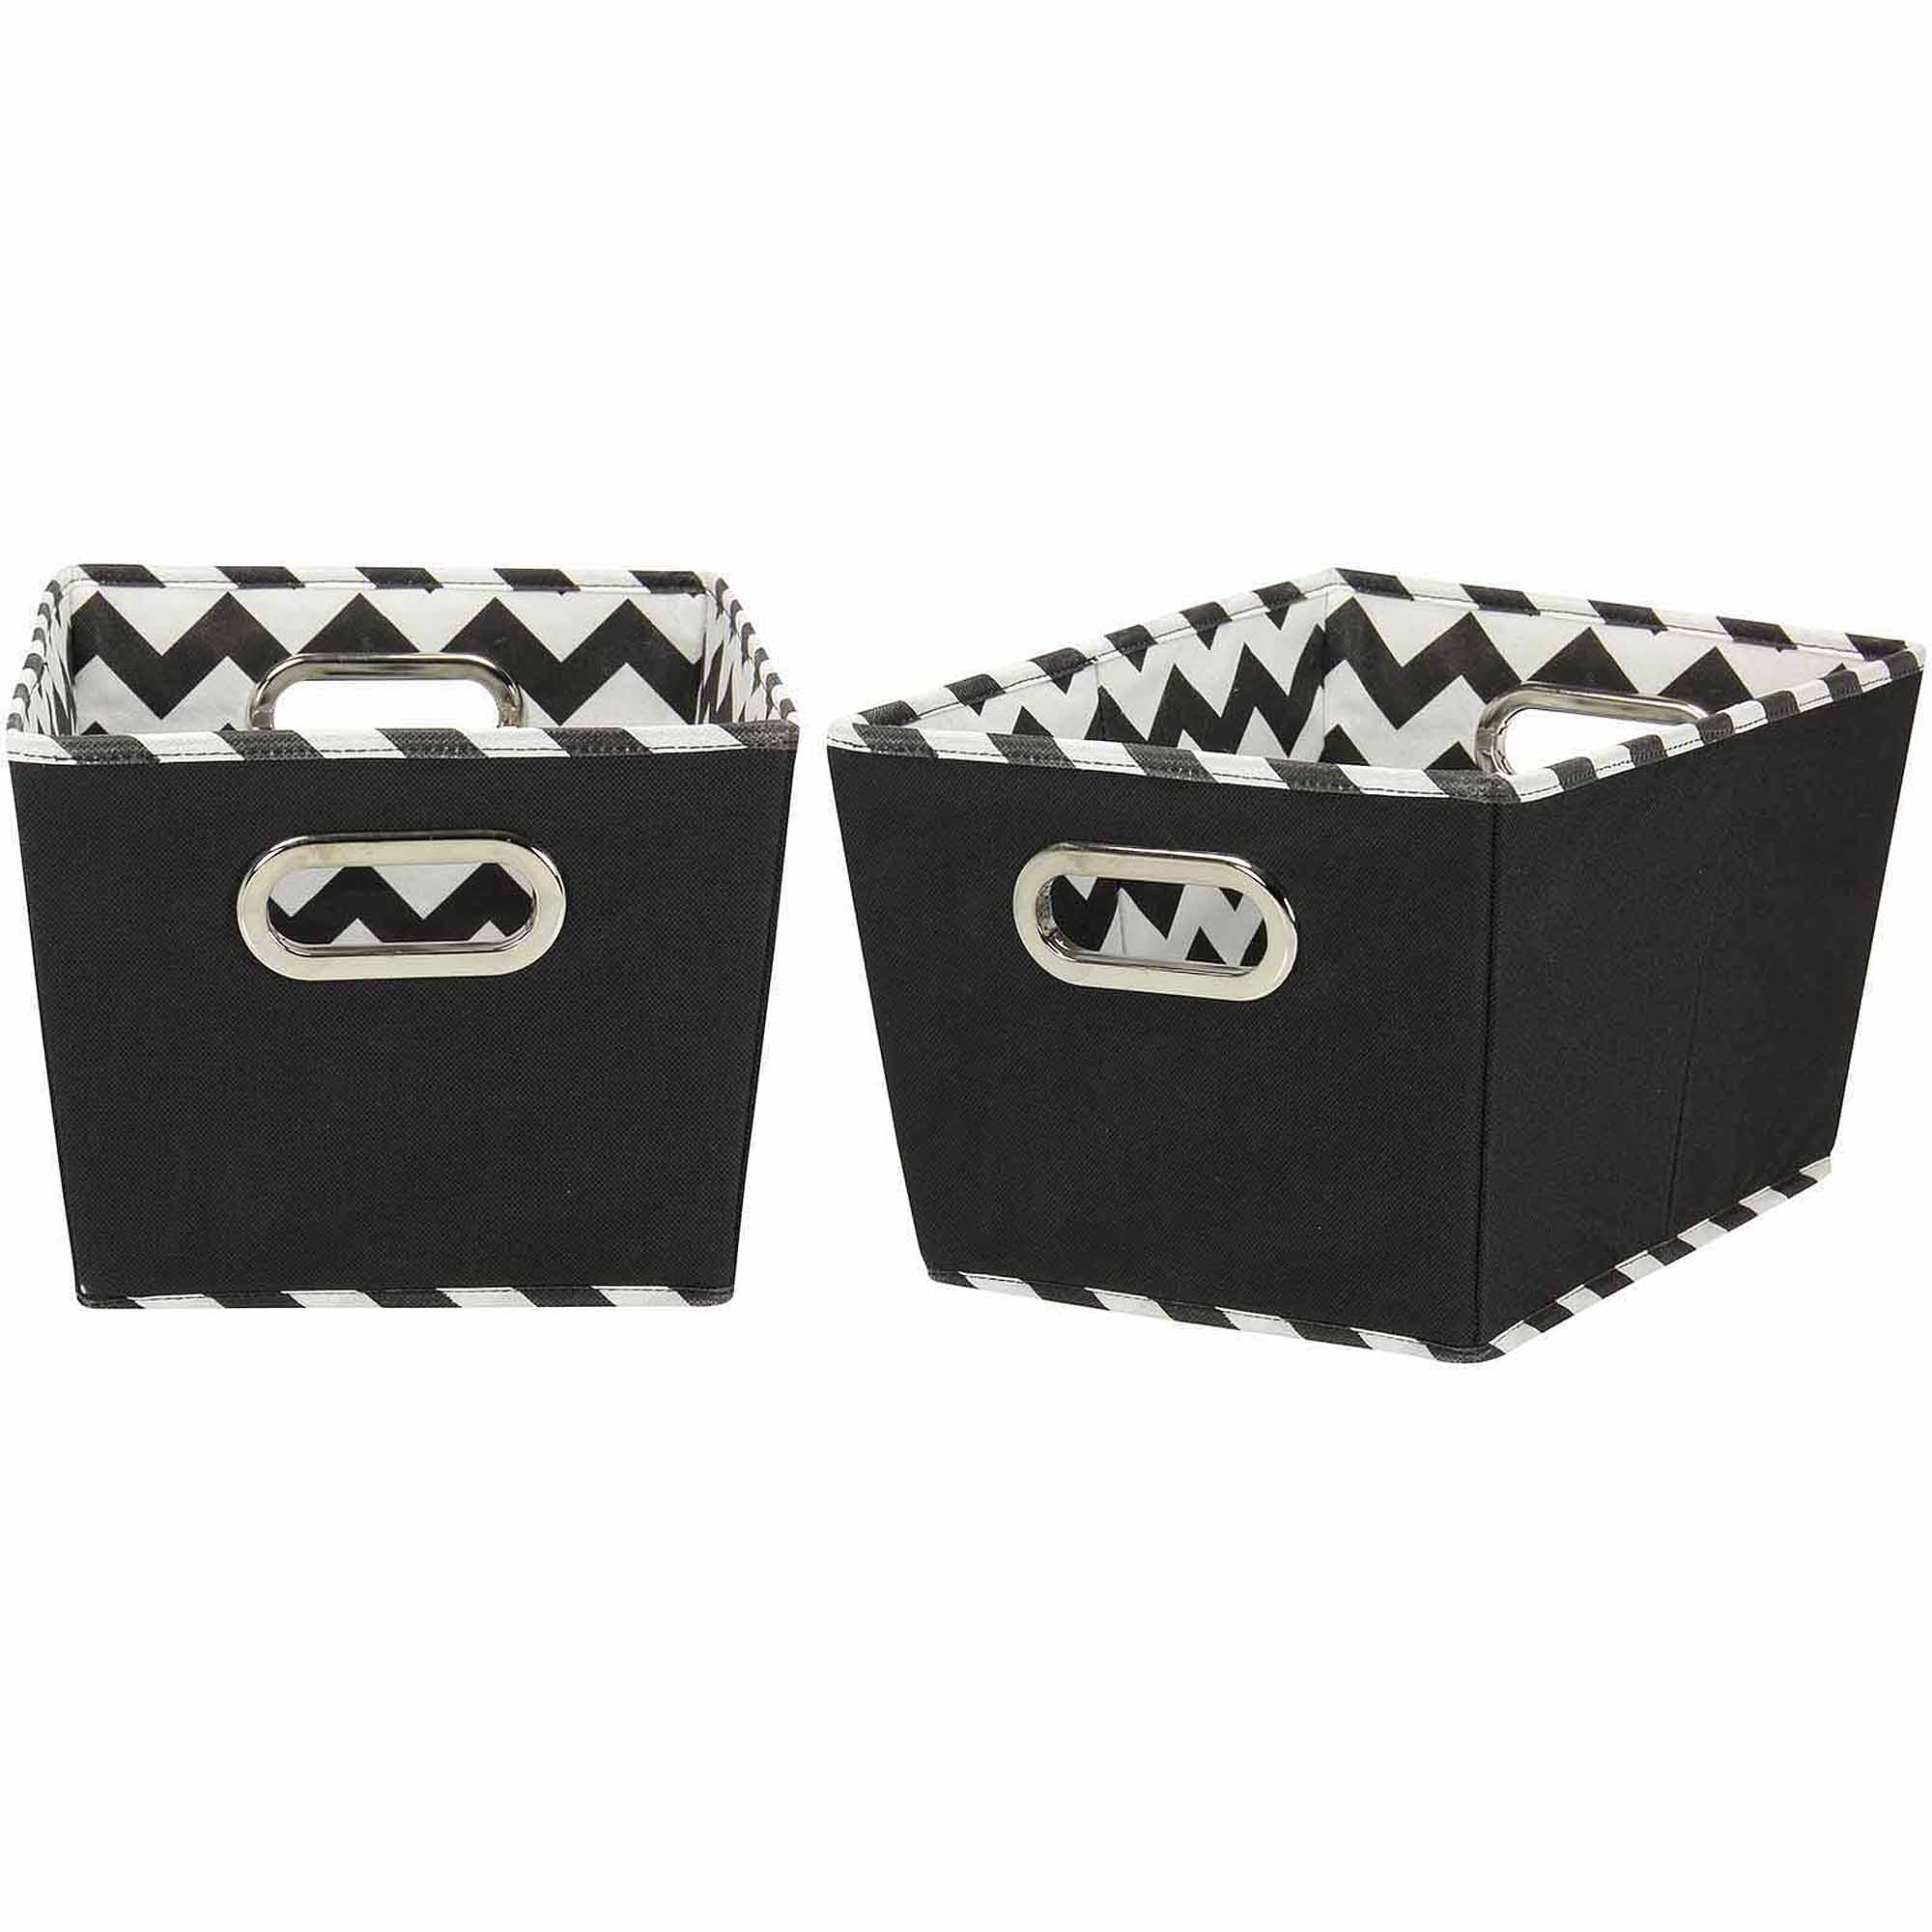 Household Essentials Small Decorative Storage Bins, 2pk, Black and Chevron